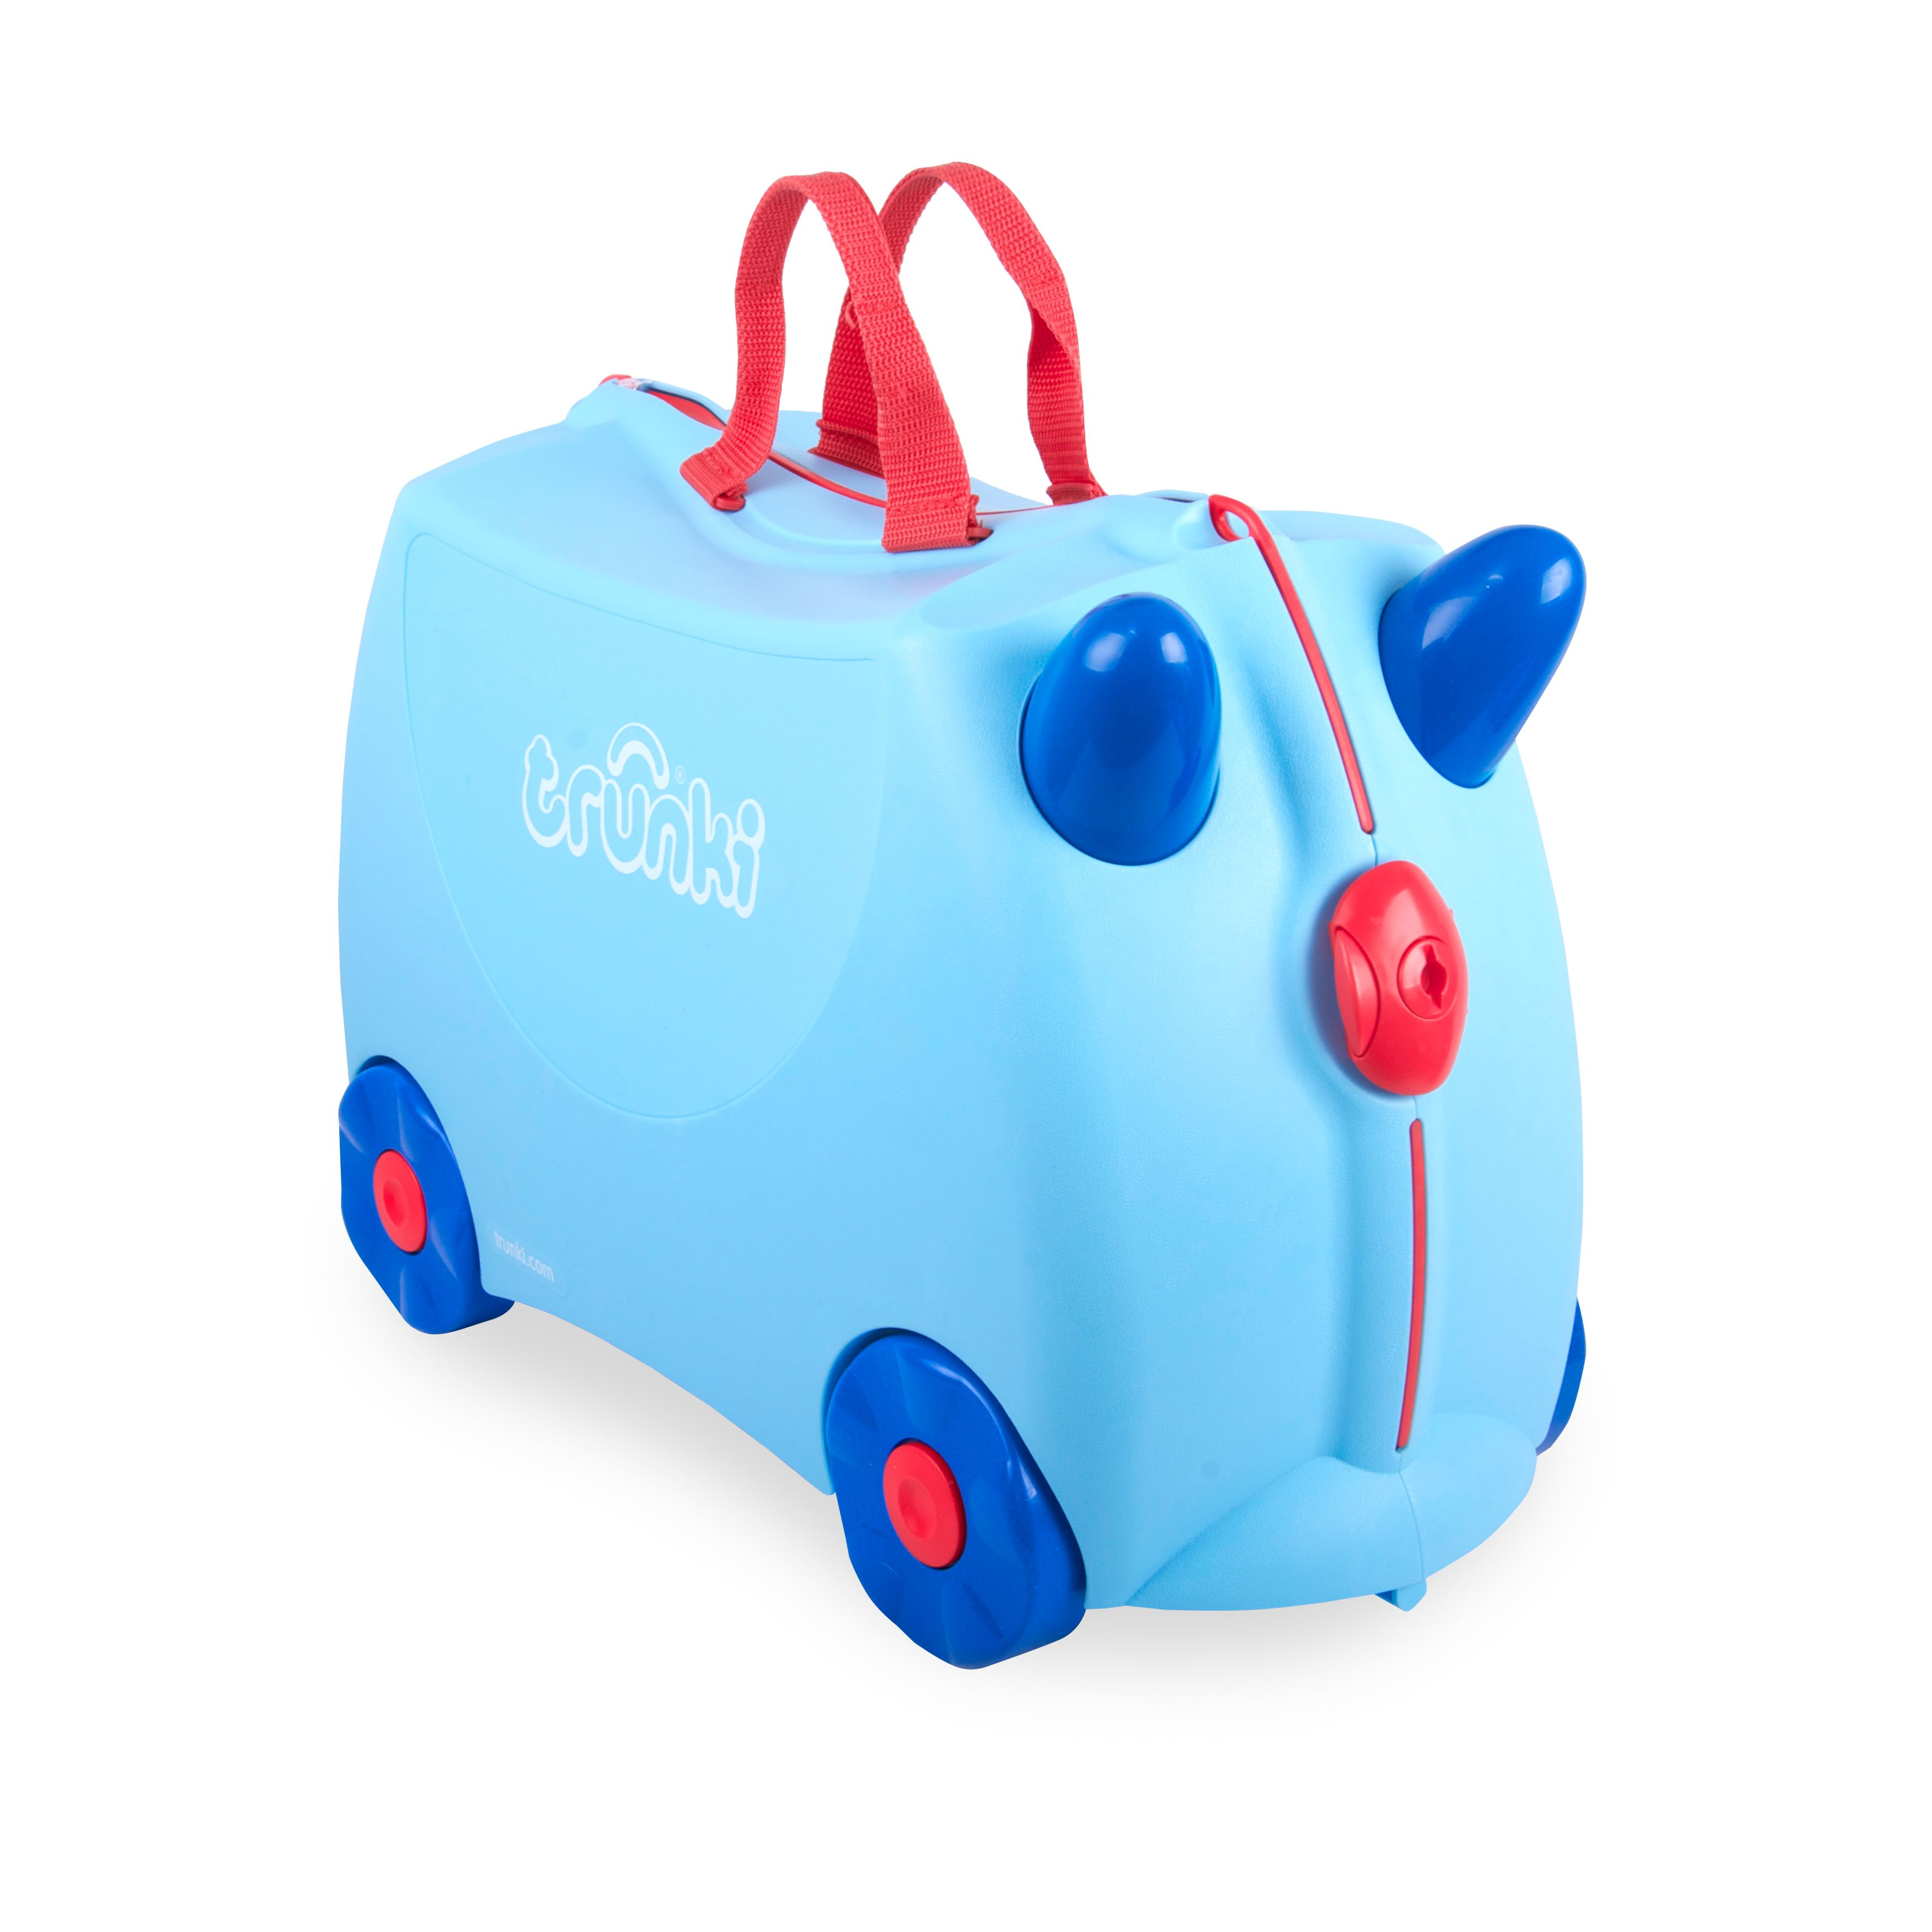 Trunki rideon suitcase George